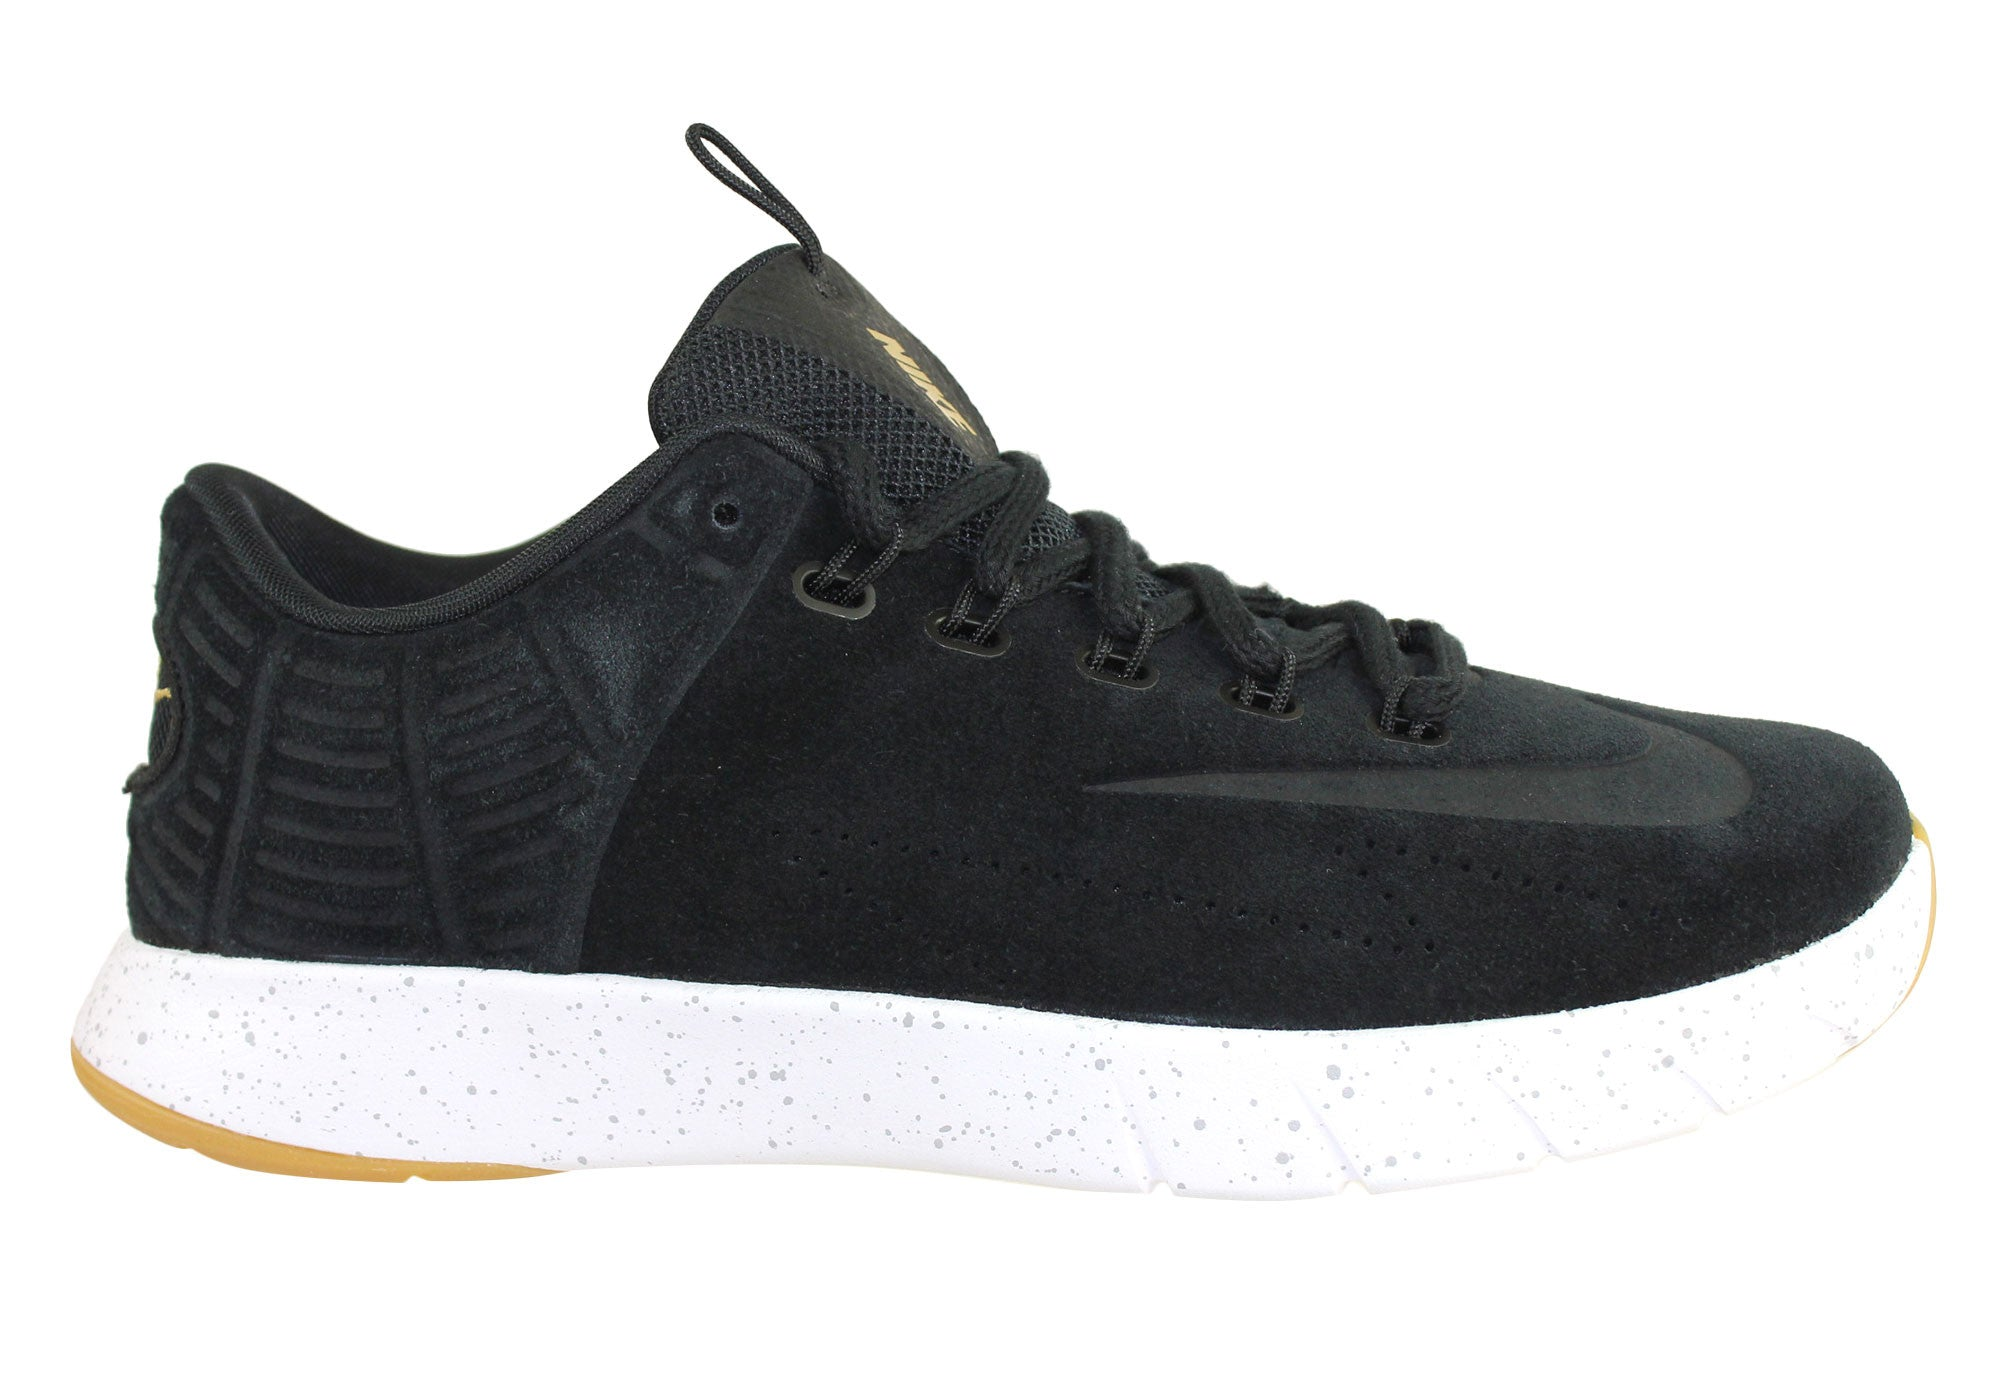 brand new 393f8 c4ed0 Home Nike Lunar Hyperrev Low Ext Mens Trainers Basketball Shoes. Black  ...